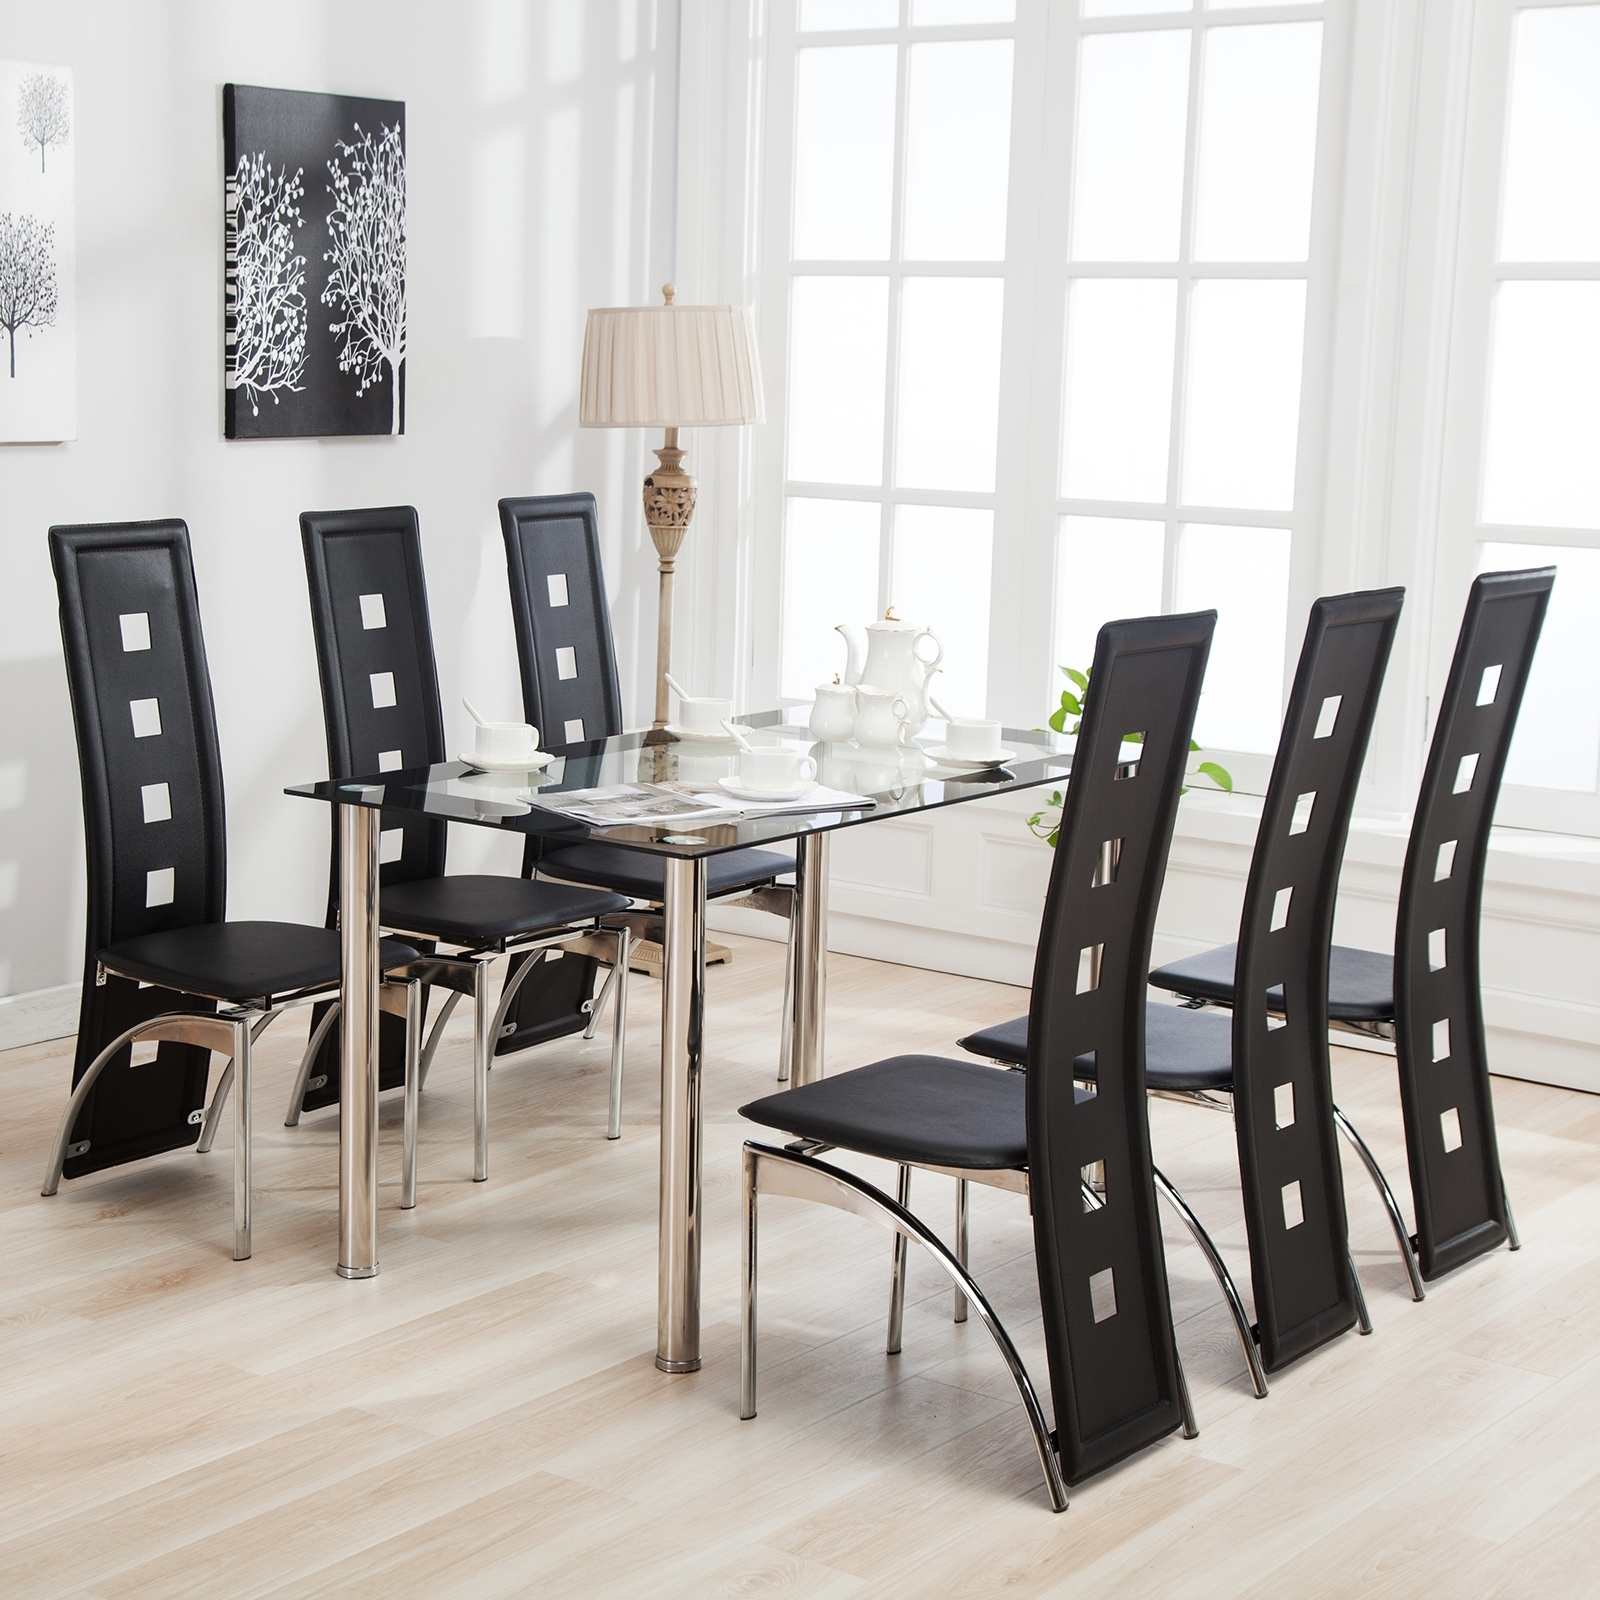 Trendy Mecor 7Pcs Dining Table Set 6 Chairs Glass Metal Kitchen Room Inside Black Glass Dining Tables 6 Chairs (View 12 of 25)